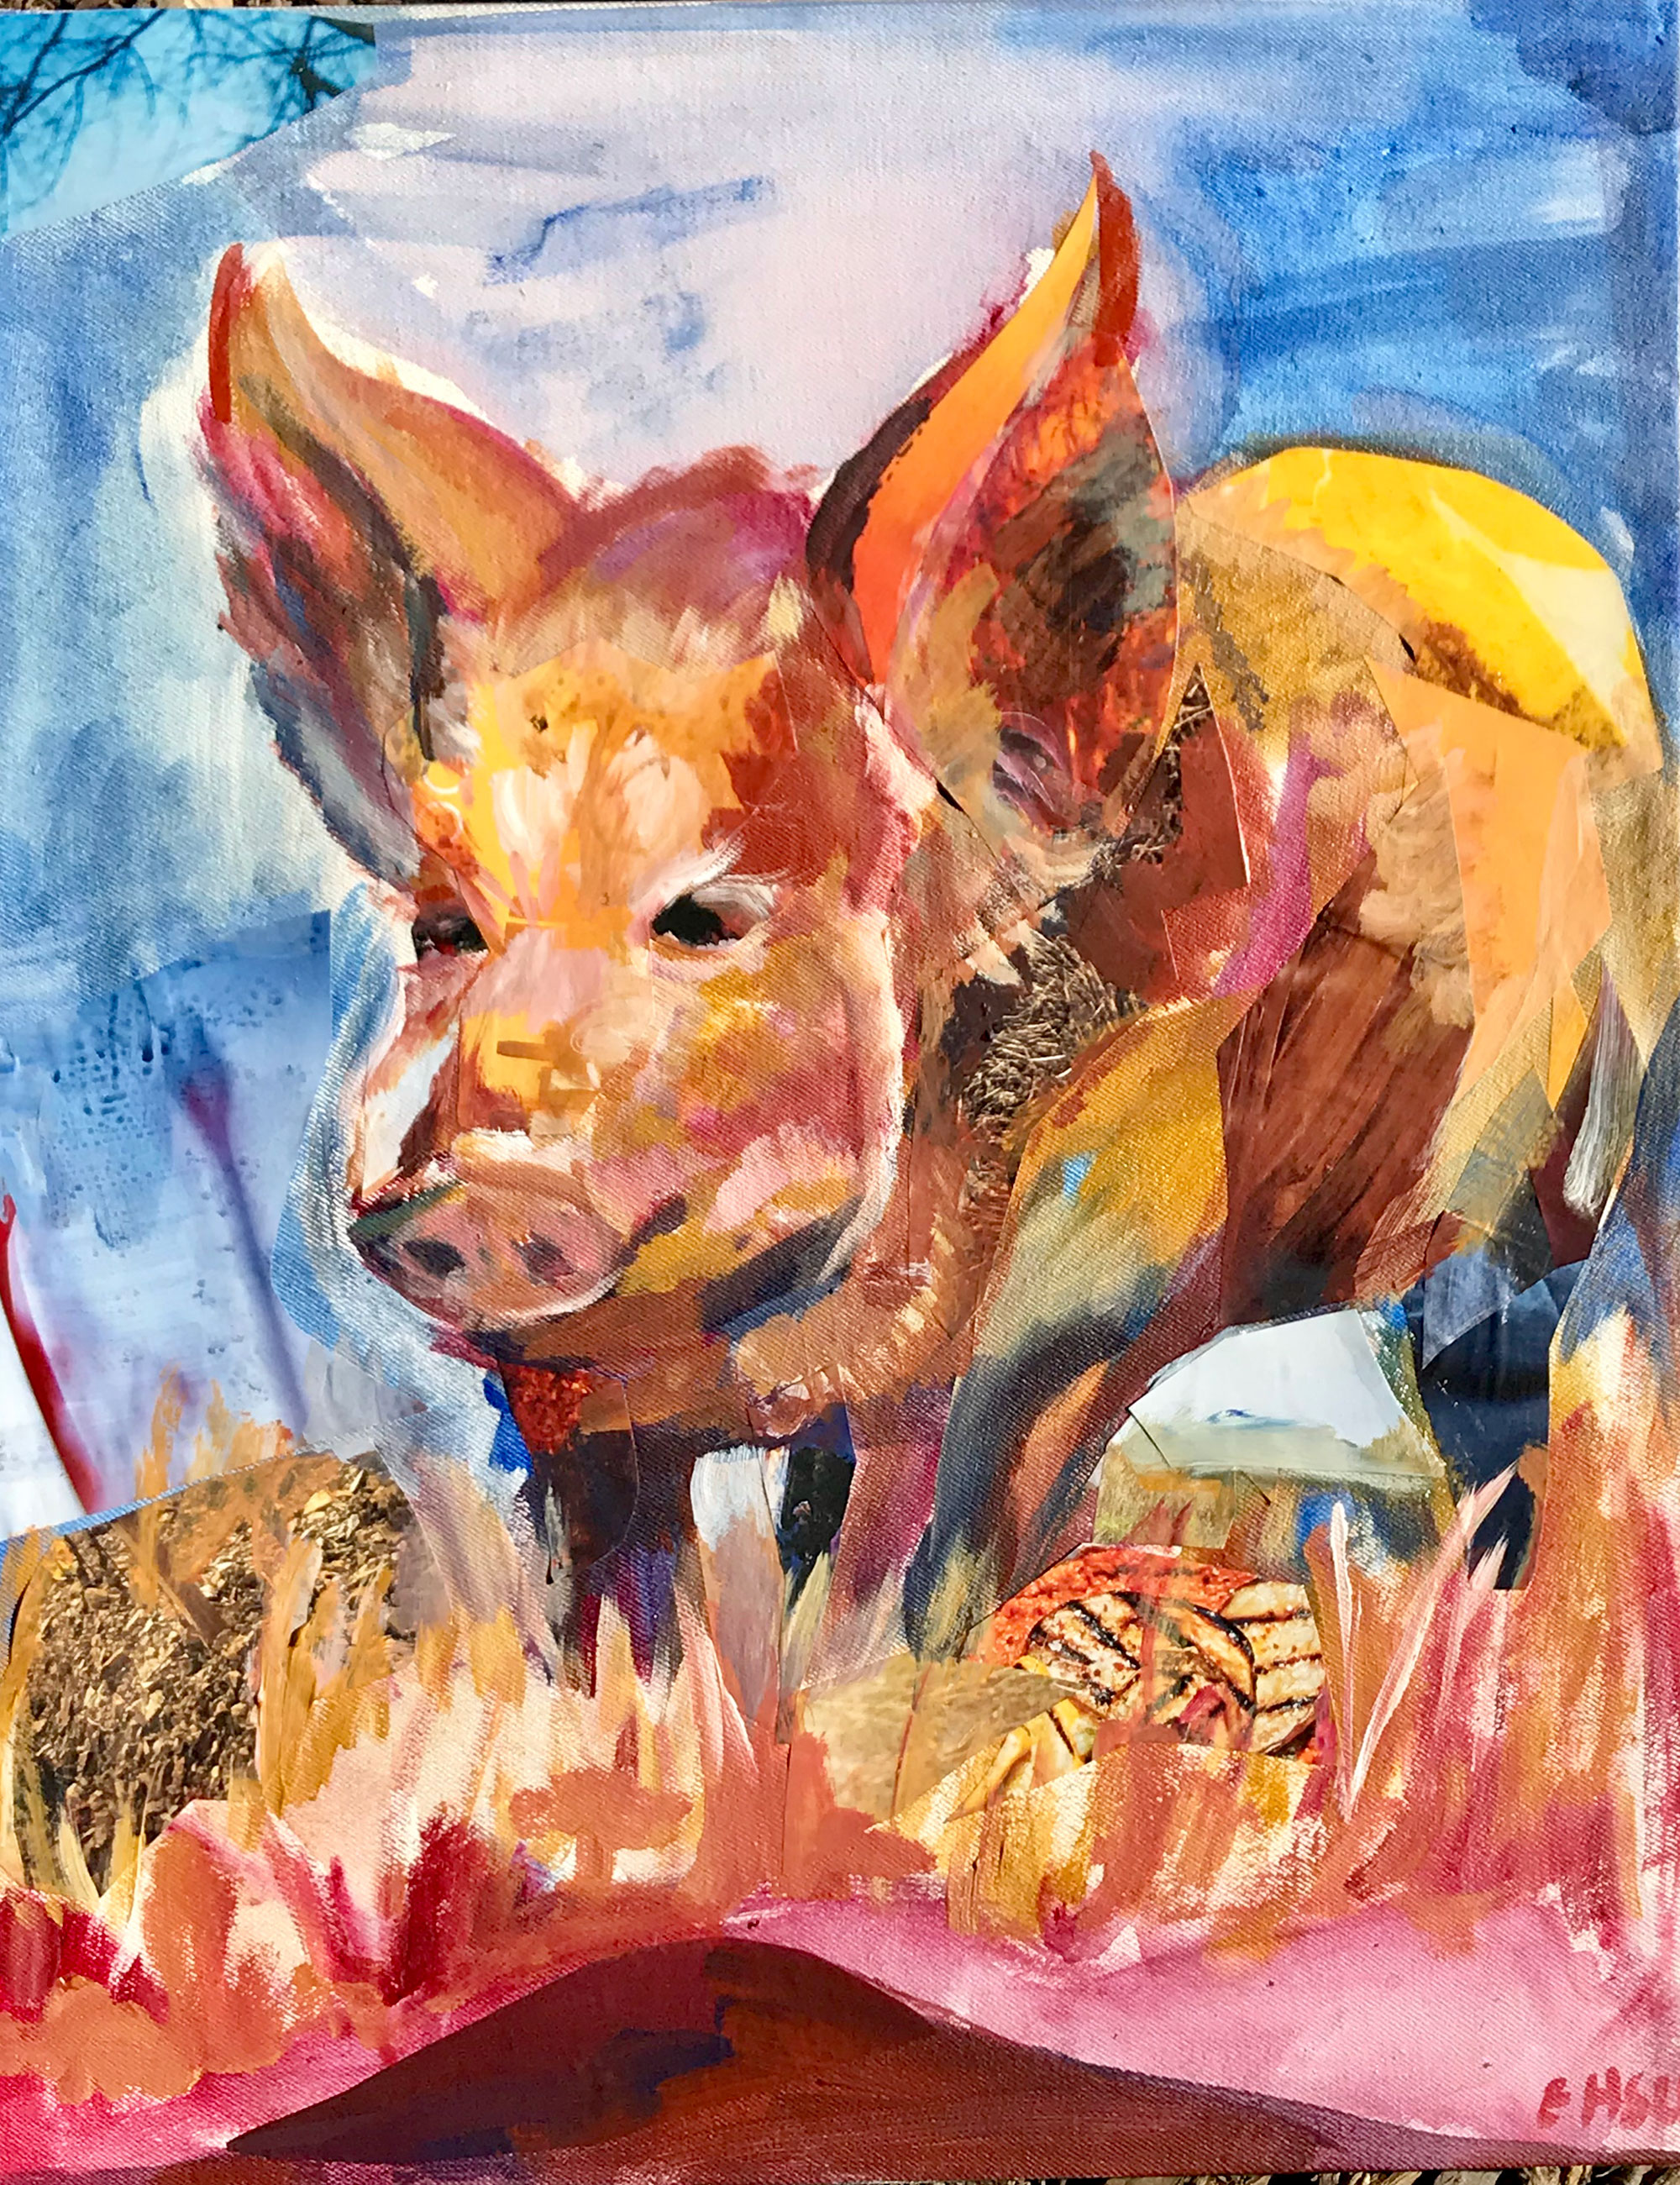 Painting and collage of pig.